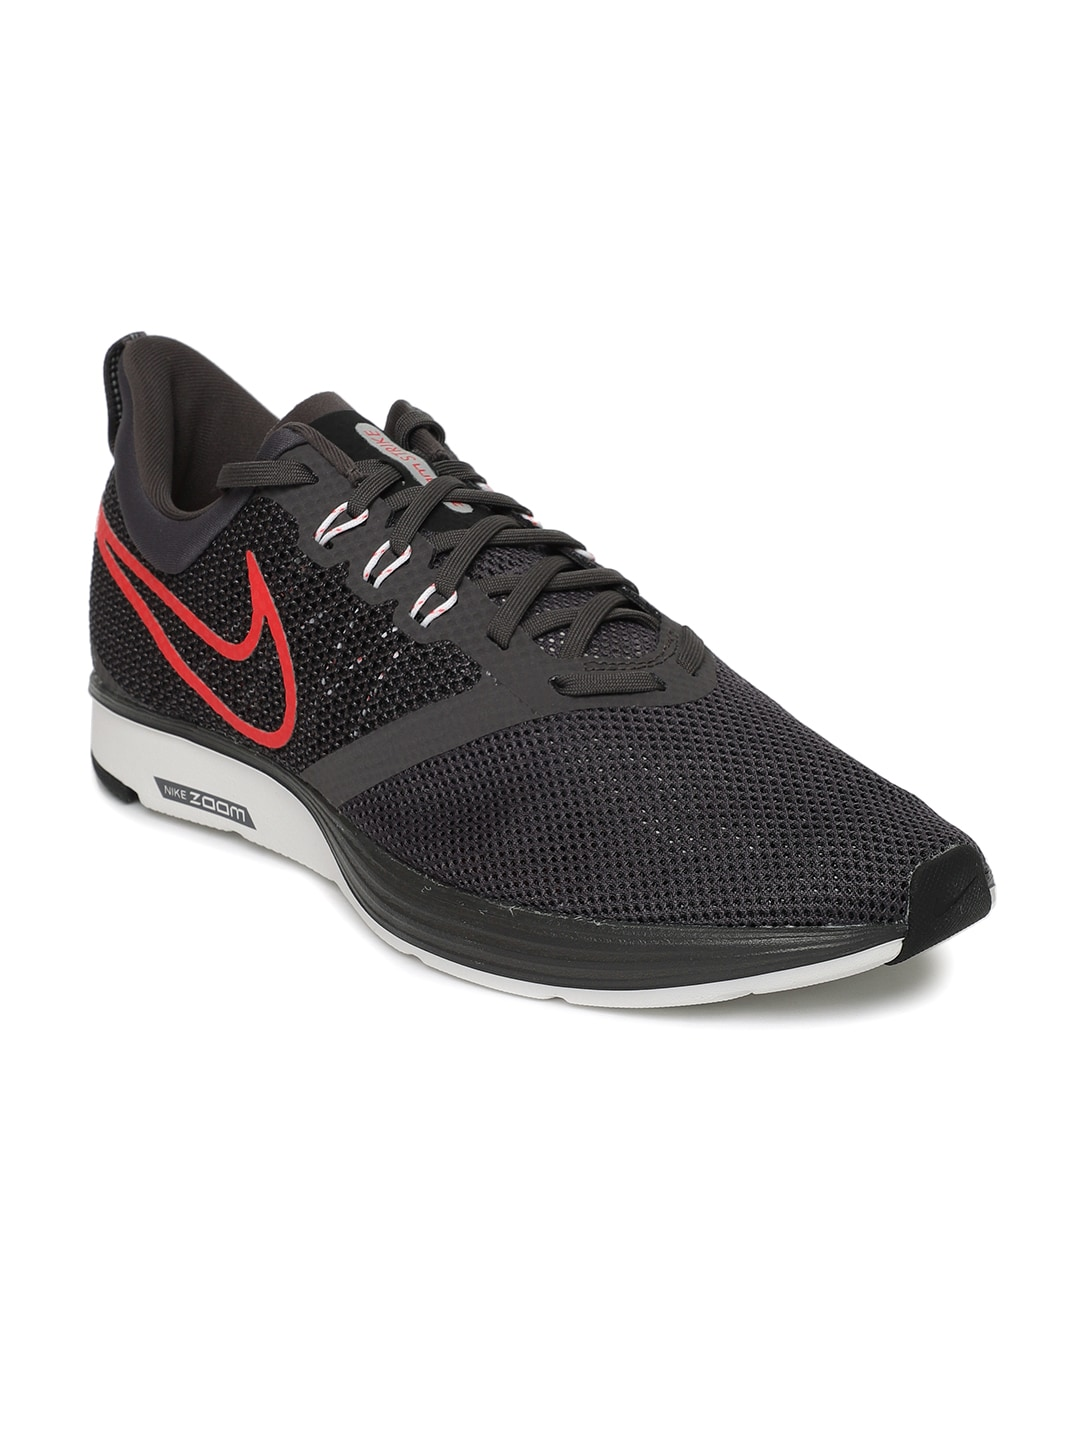 b54de44261f56 Nike Zoom Shoes - Buy Nike Zoom Shoes online in India